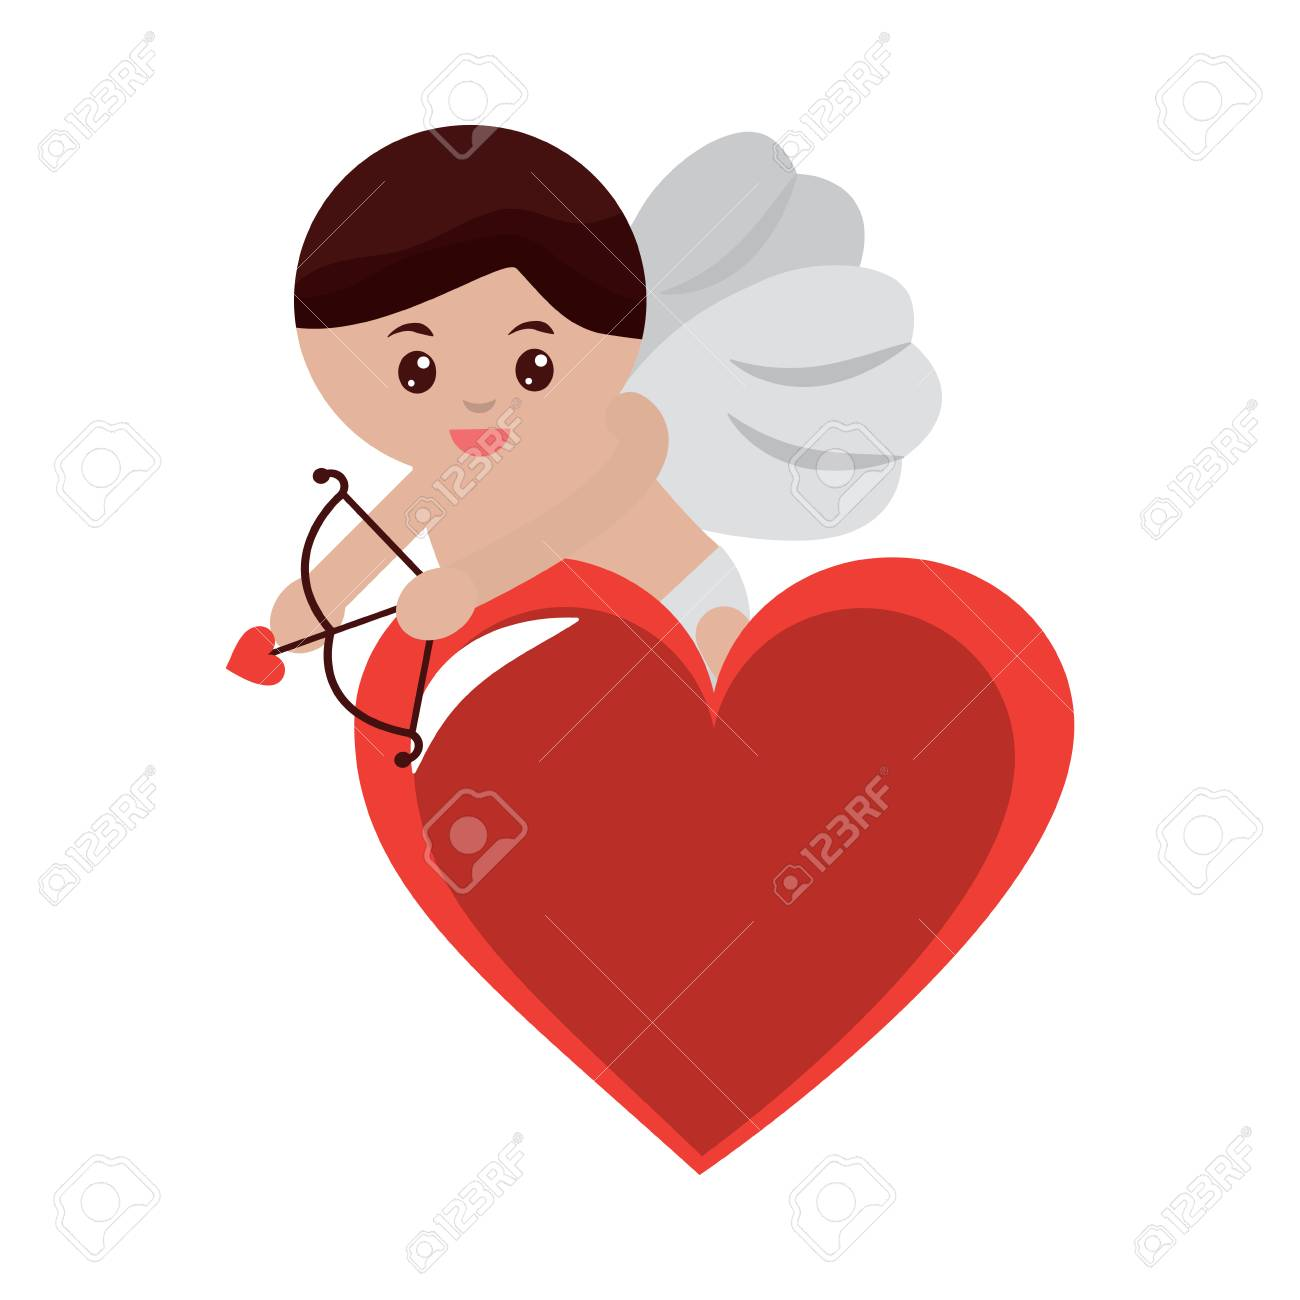 Cupid Holding Bow And Arrow On Heart Valentines Day Icon Image